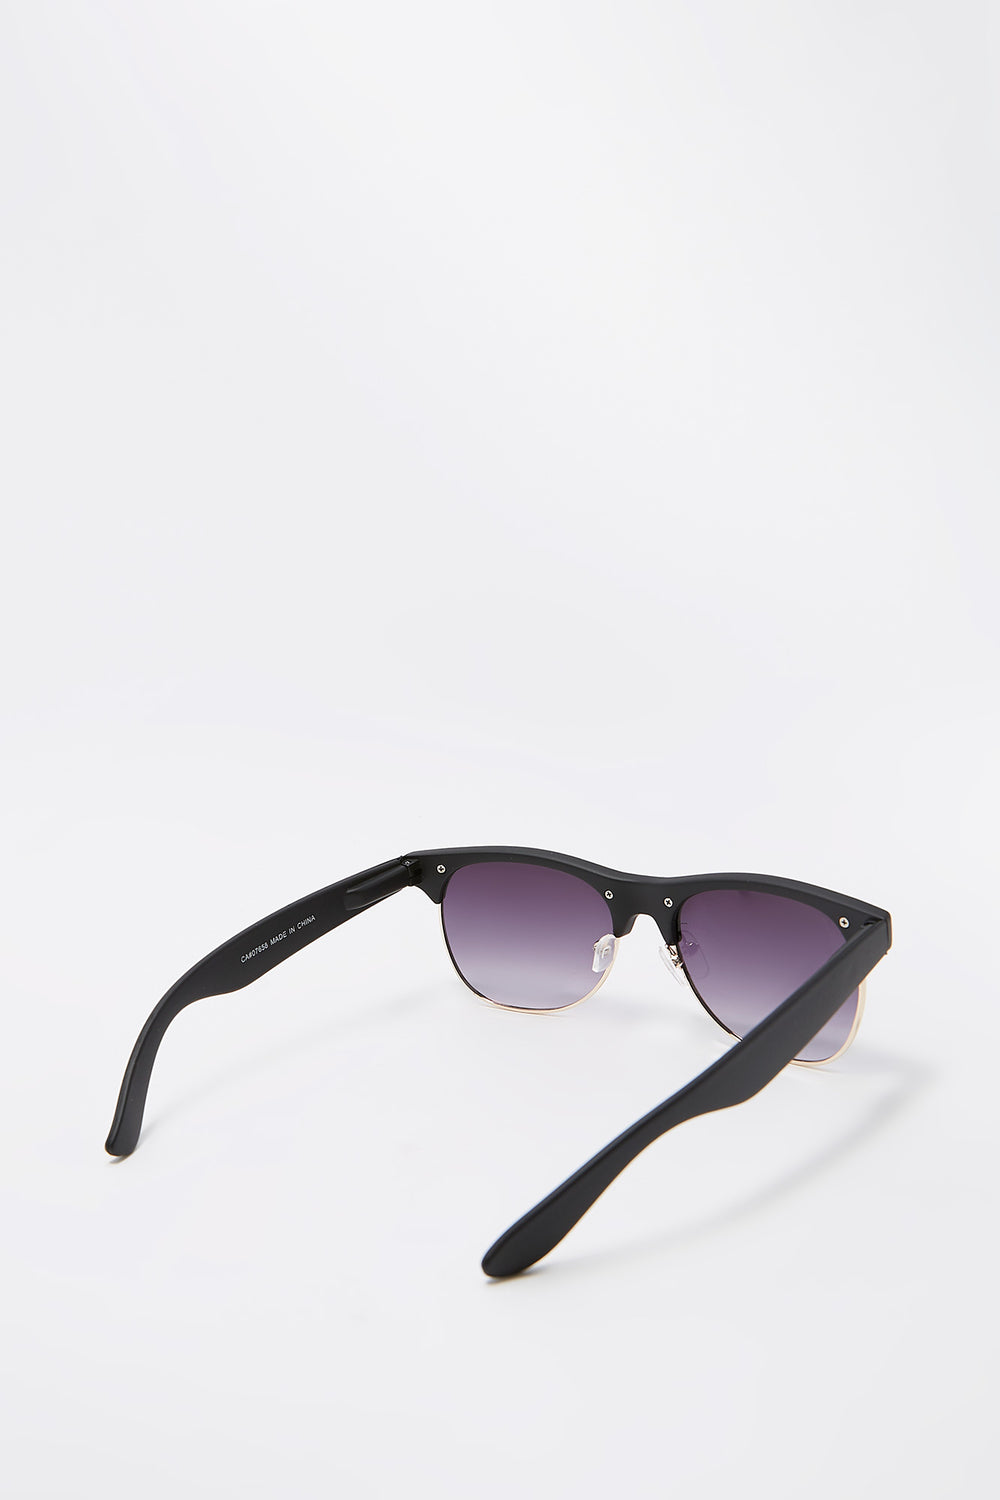 Half-Rim Rounded Square Frame Sunglasses Black